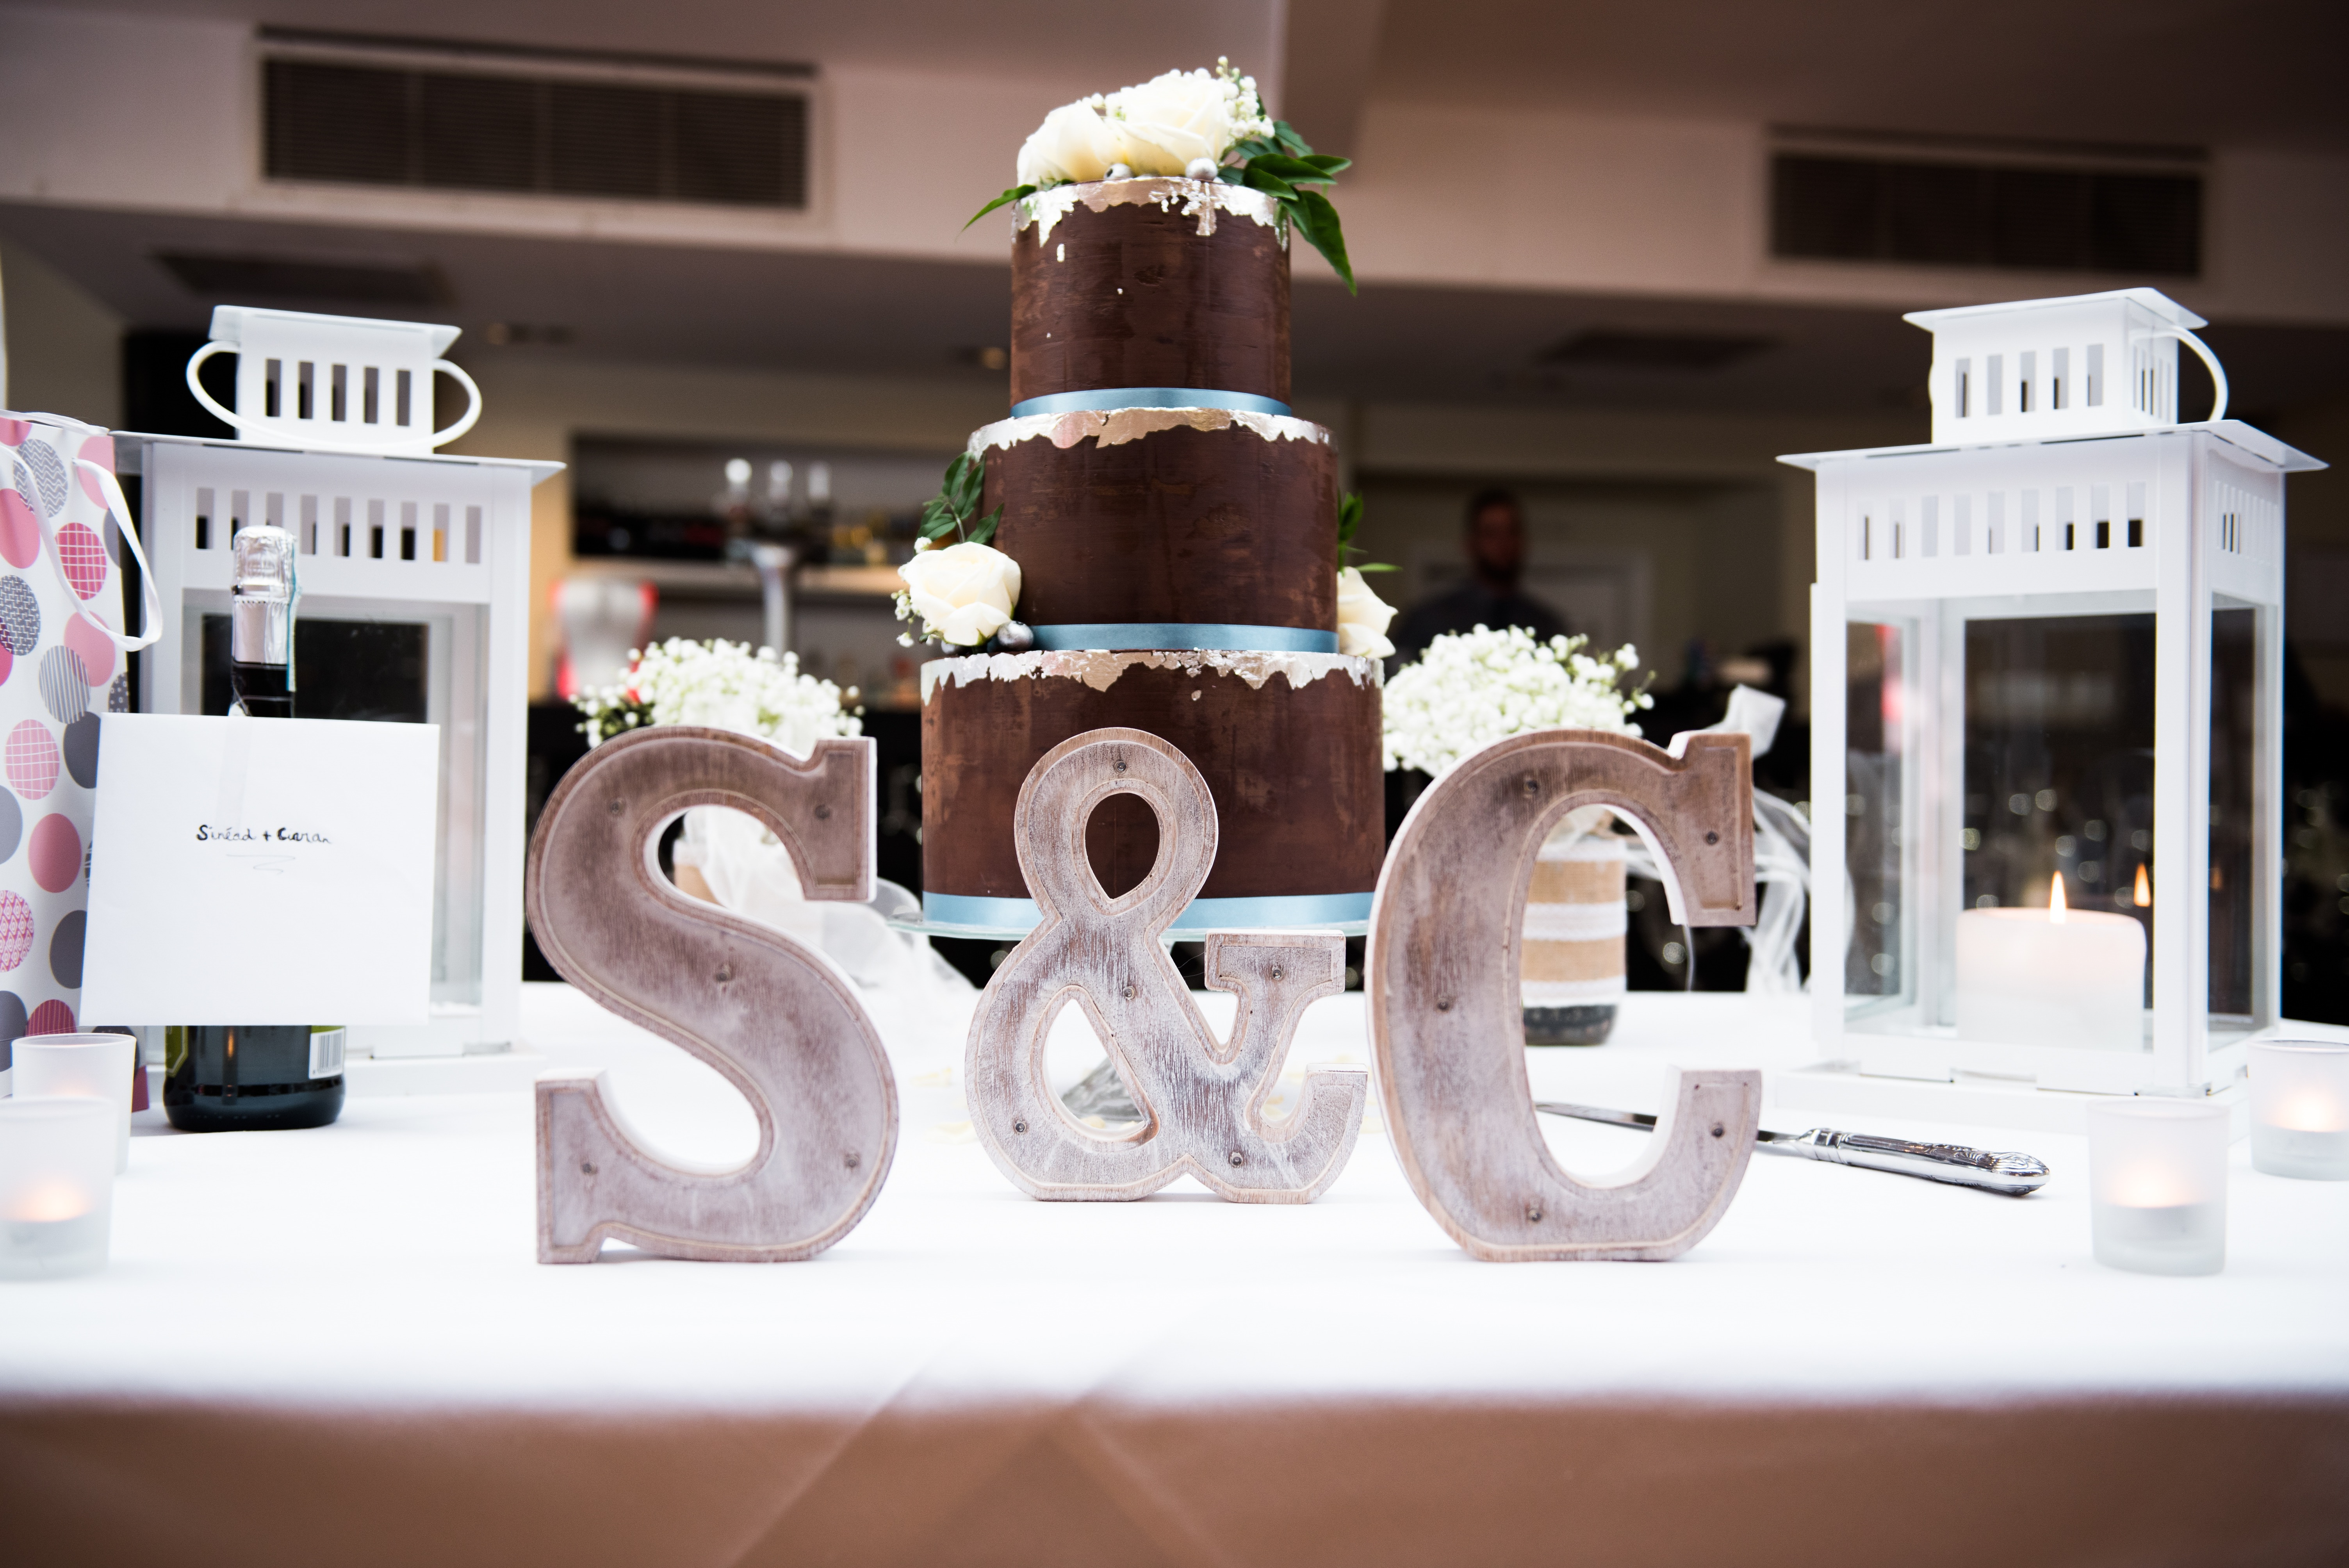 three tiered chocolate ganache luxury wedding cake with edible silver leaf and fresh flowers at Stoke Place